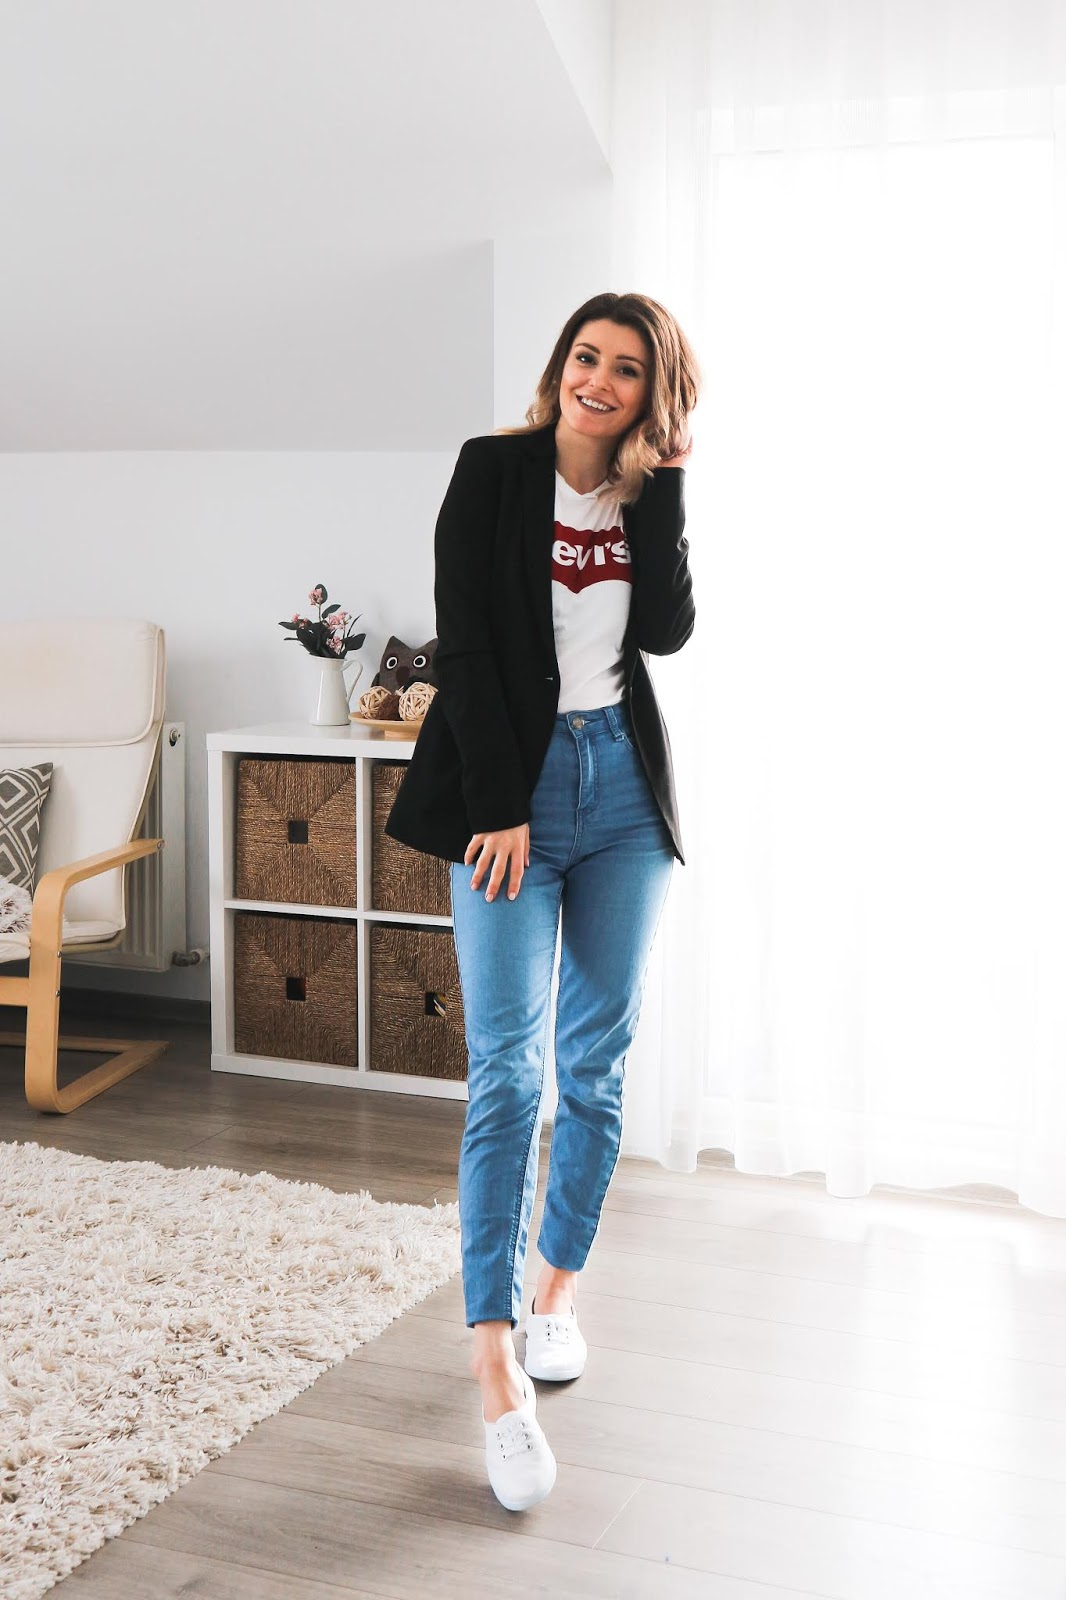 Levi's logo t-shirt outfit with jeans